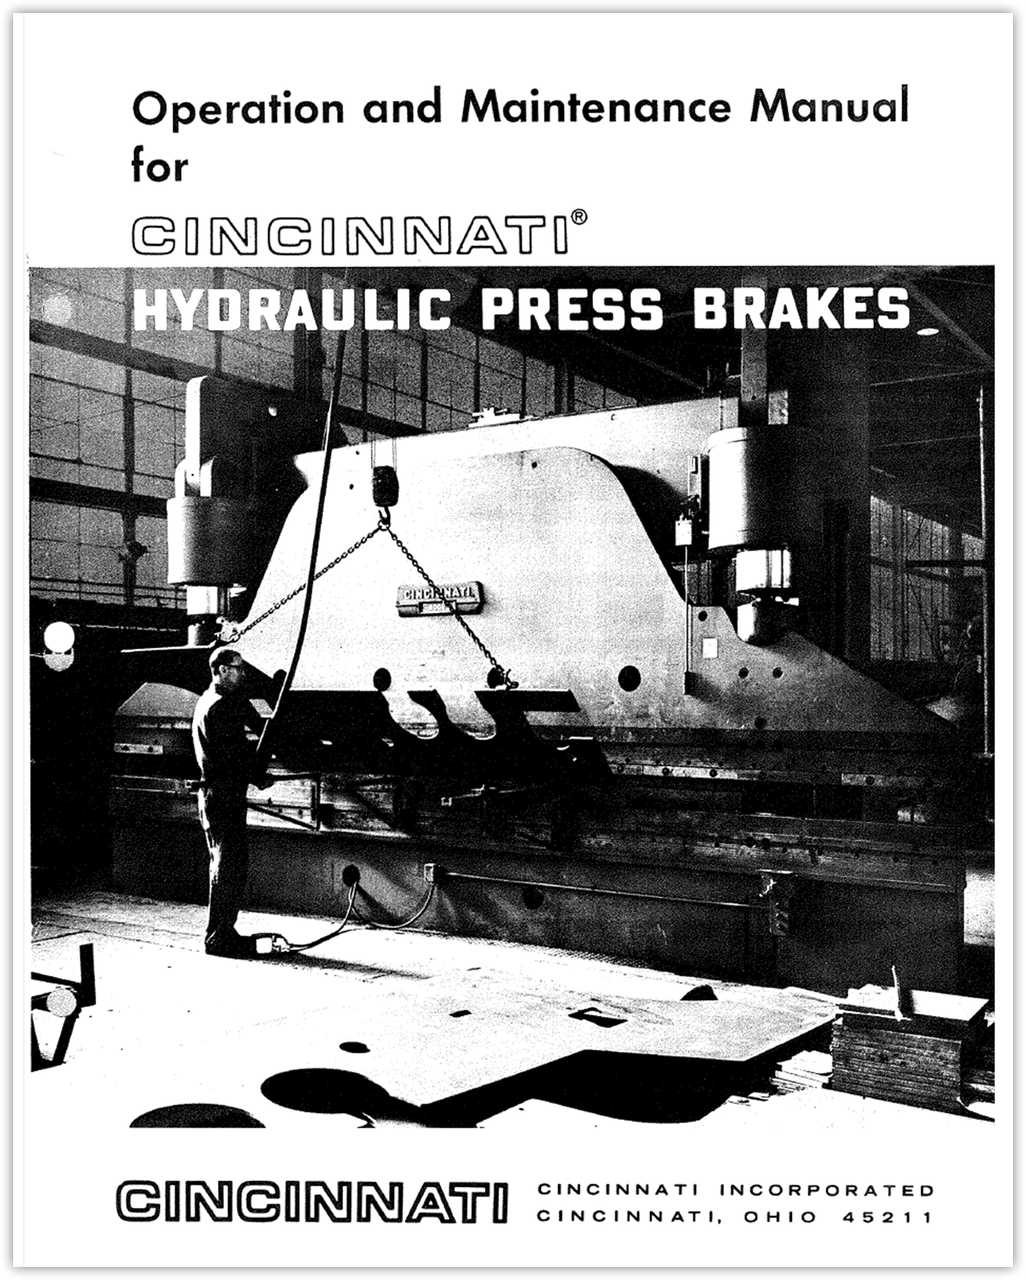 FORM 70012 - HYDRAULIC PRESS BRAKES - Operation and Maintenance Manual